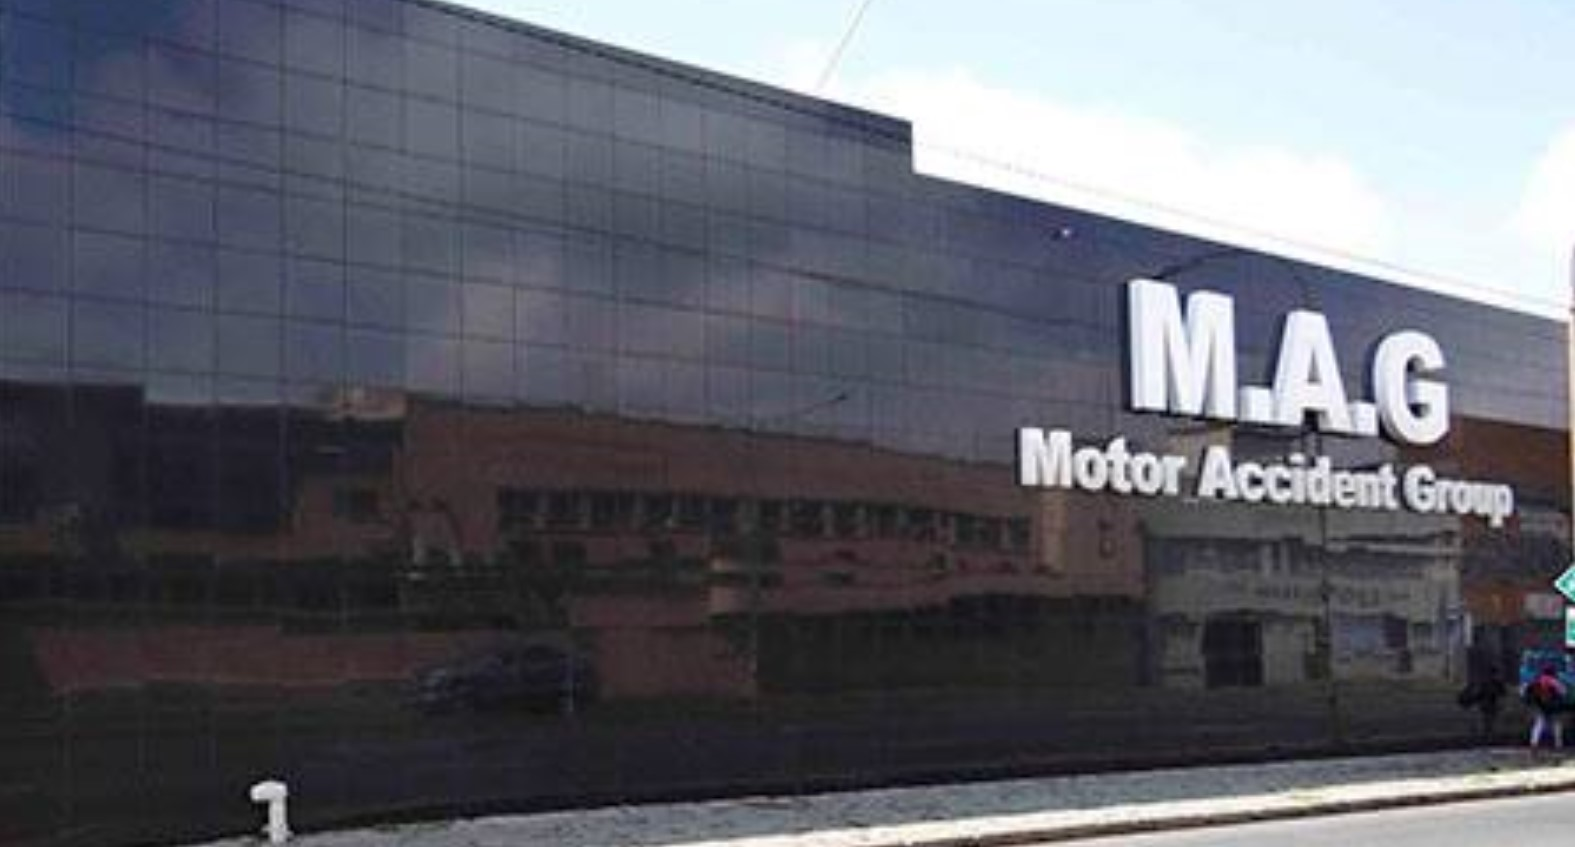 Motor Accident Group | MAG Auto Body